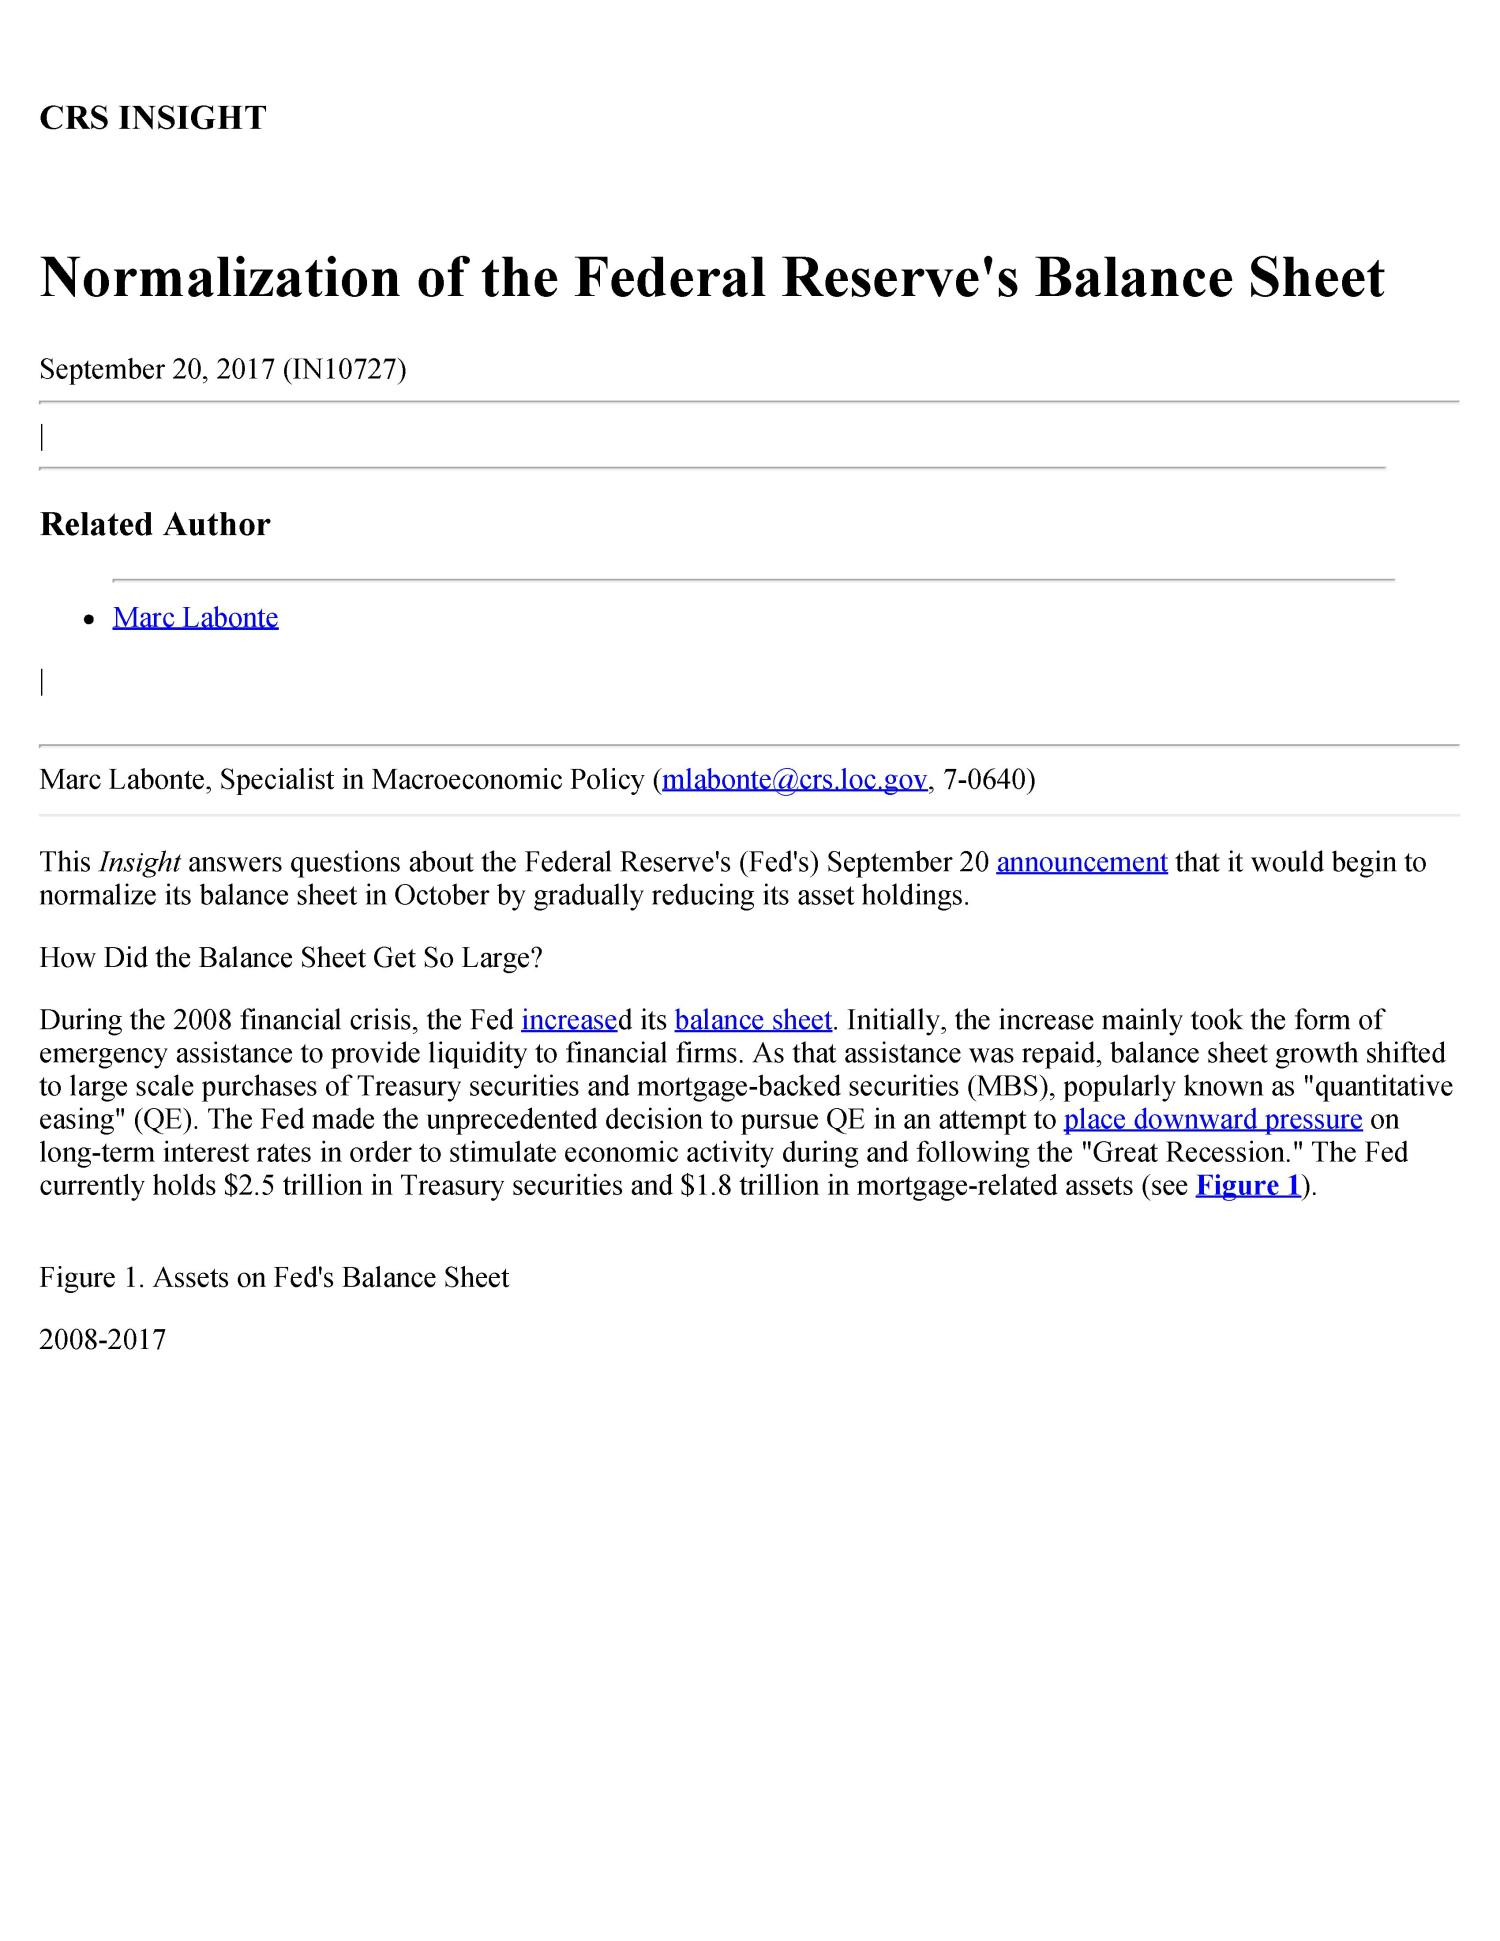 Normalization of the Federal Reserve's Balance Sheet                                                                                                      [Sequence #]: 1 of 3